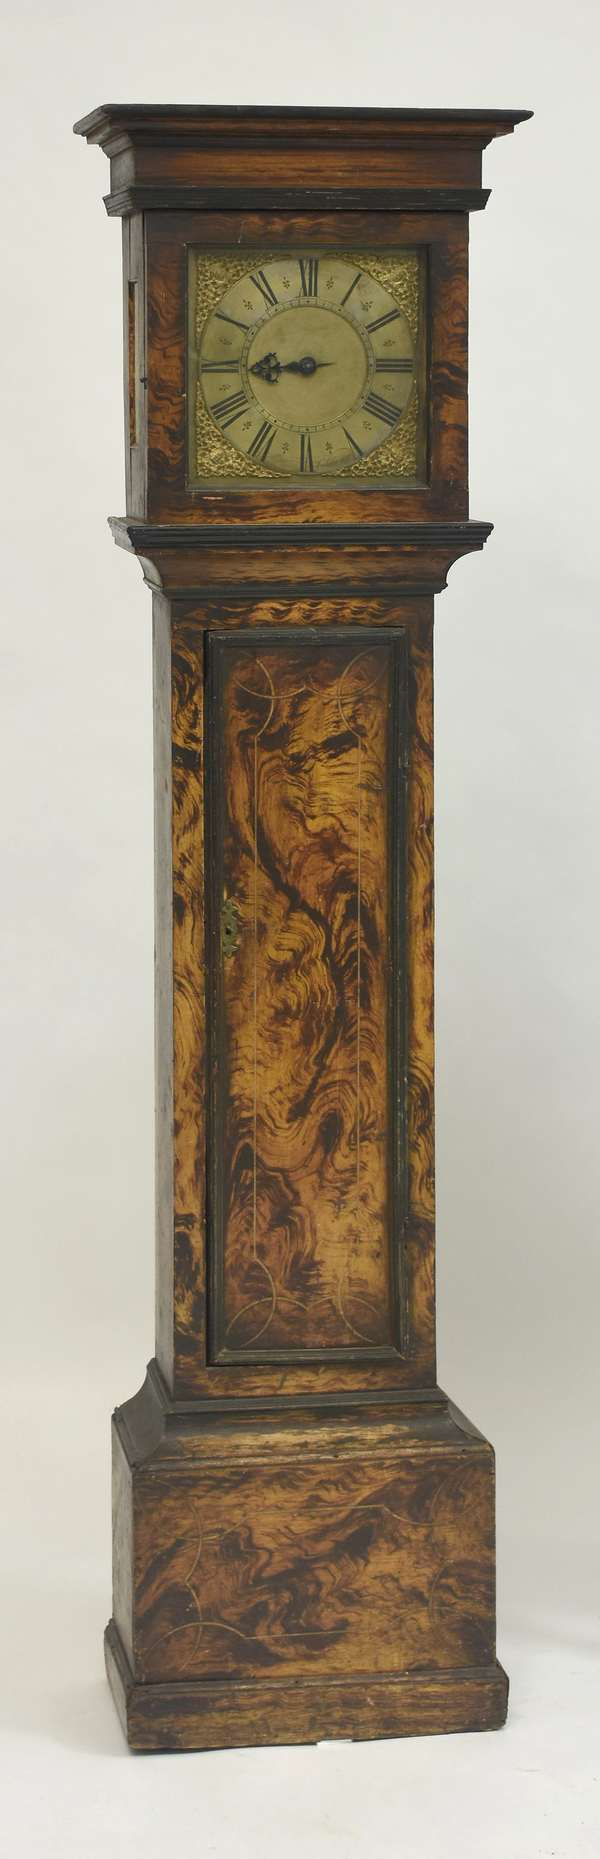 Grain painted tall clock, works signed Nat. Hedge, Colchester, 75.5